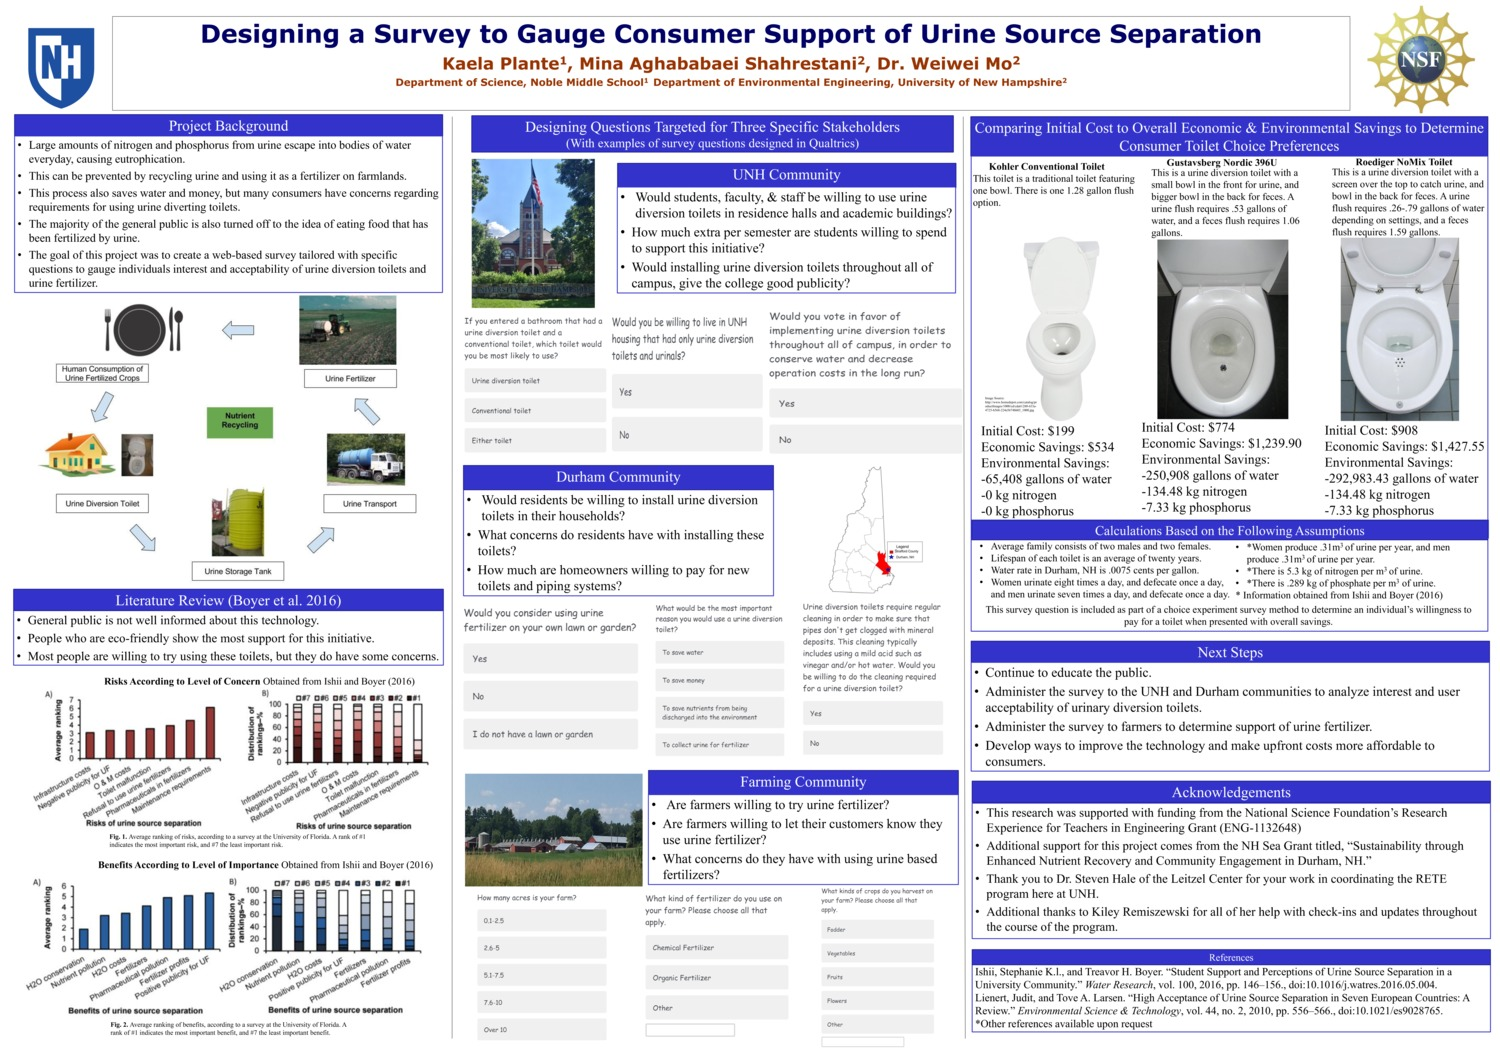 Designing A Survey To Gauge Consumer Support Of Urine Source Separation by kel89